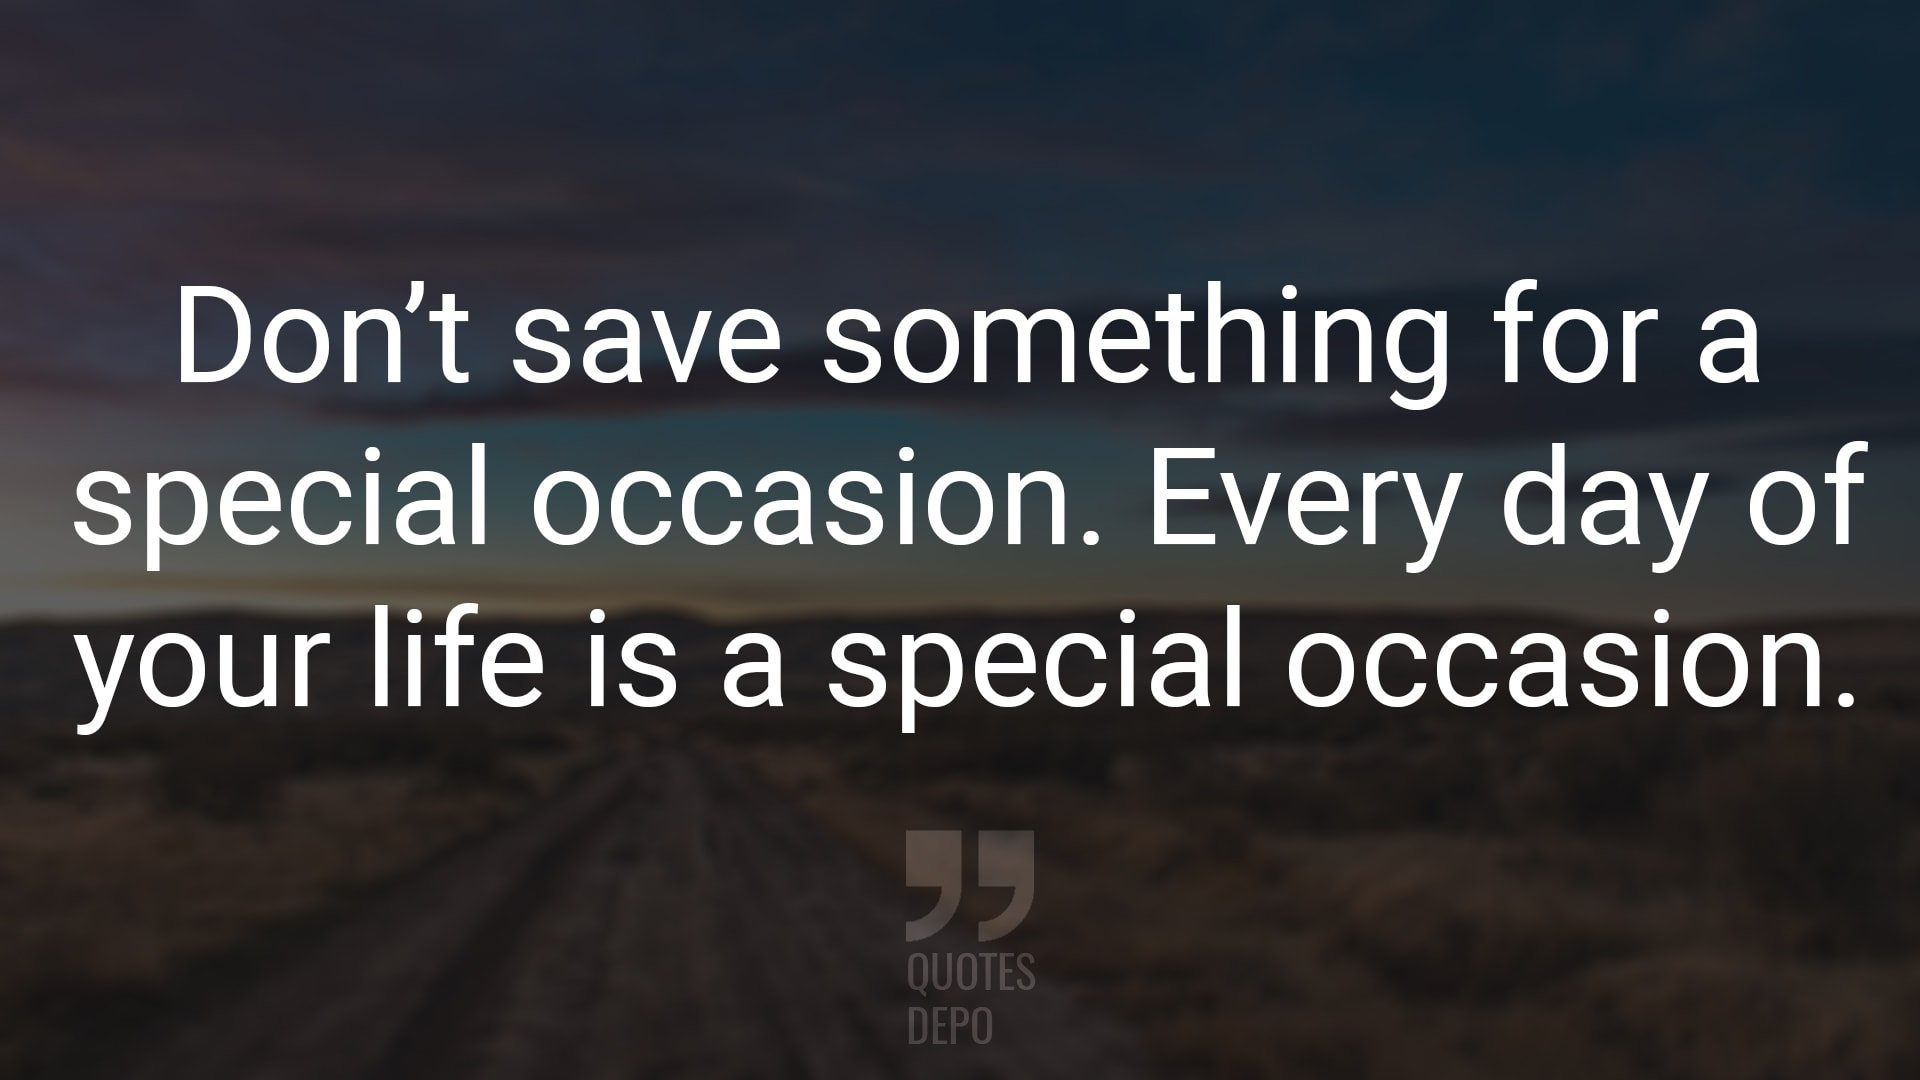 Don't Save Something for a Special Occasion